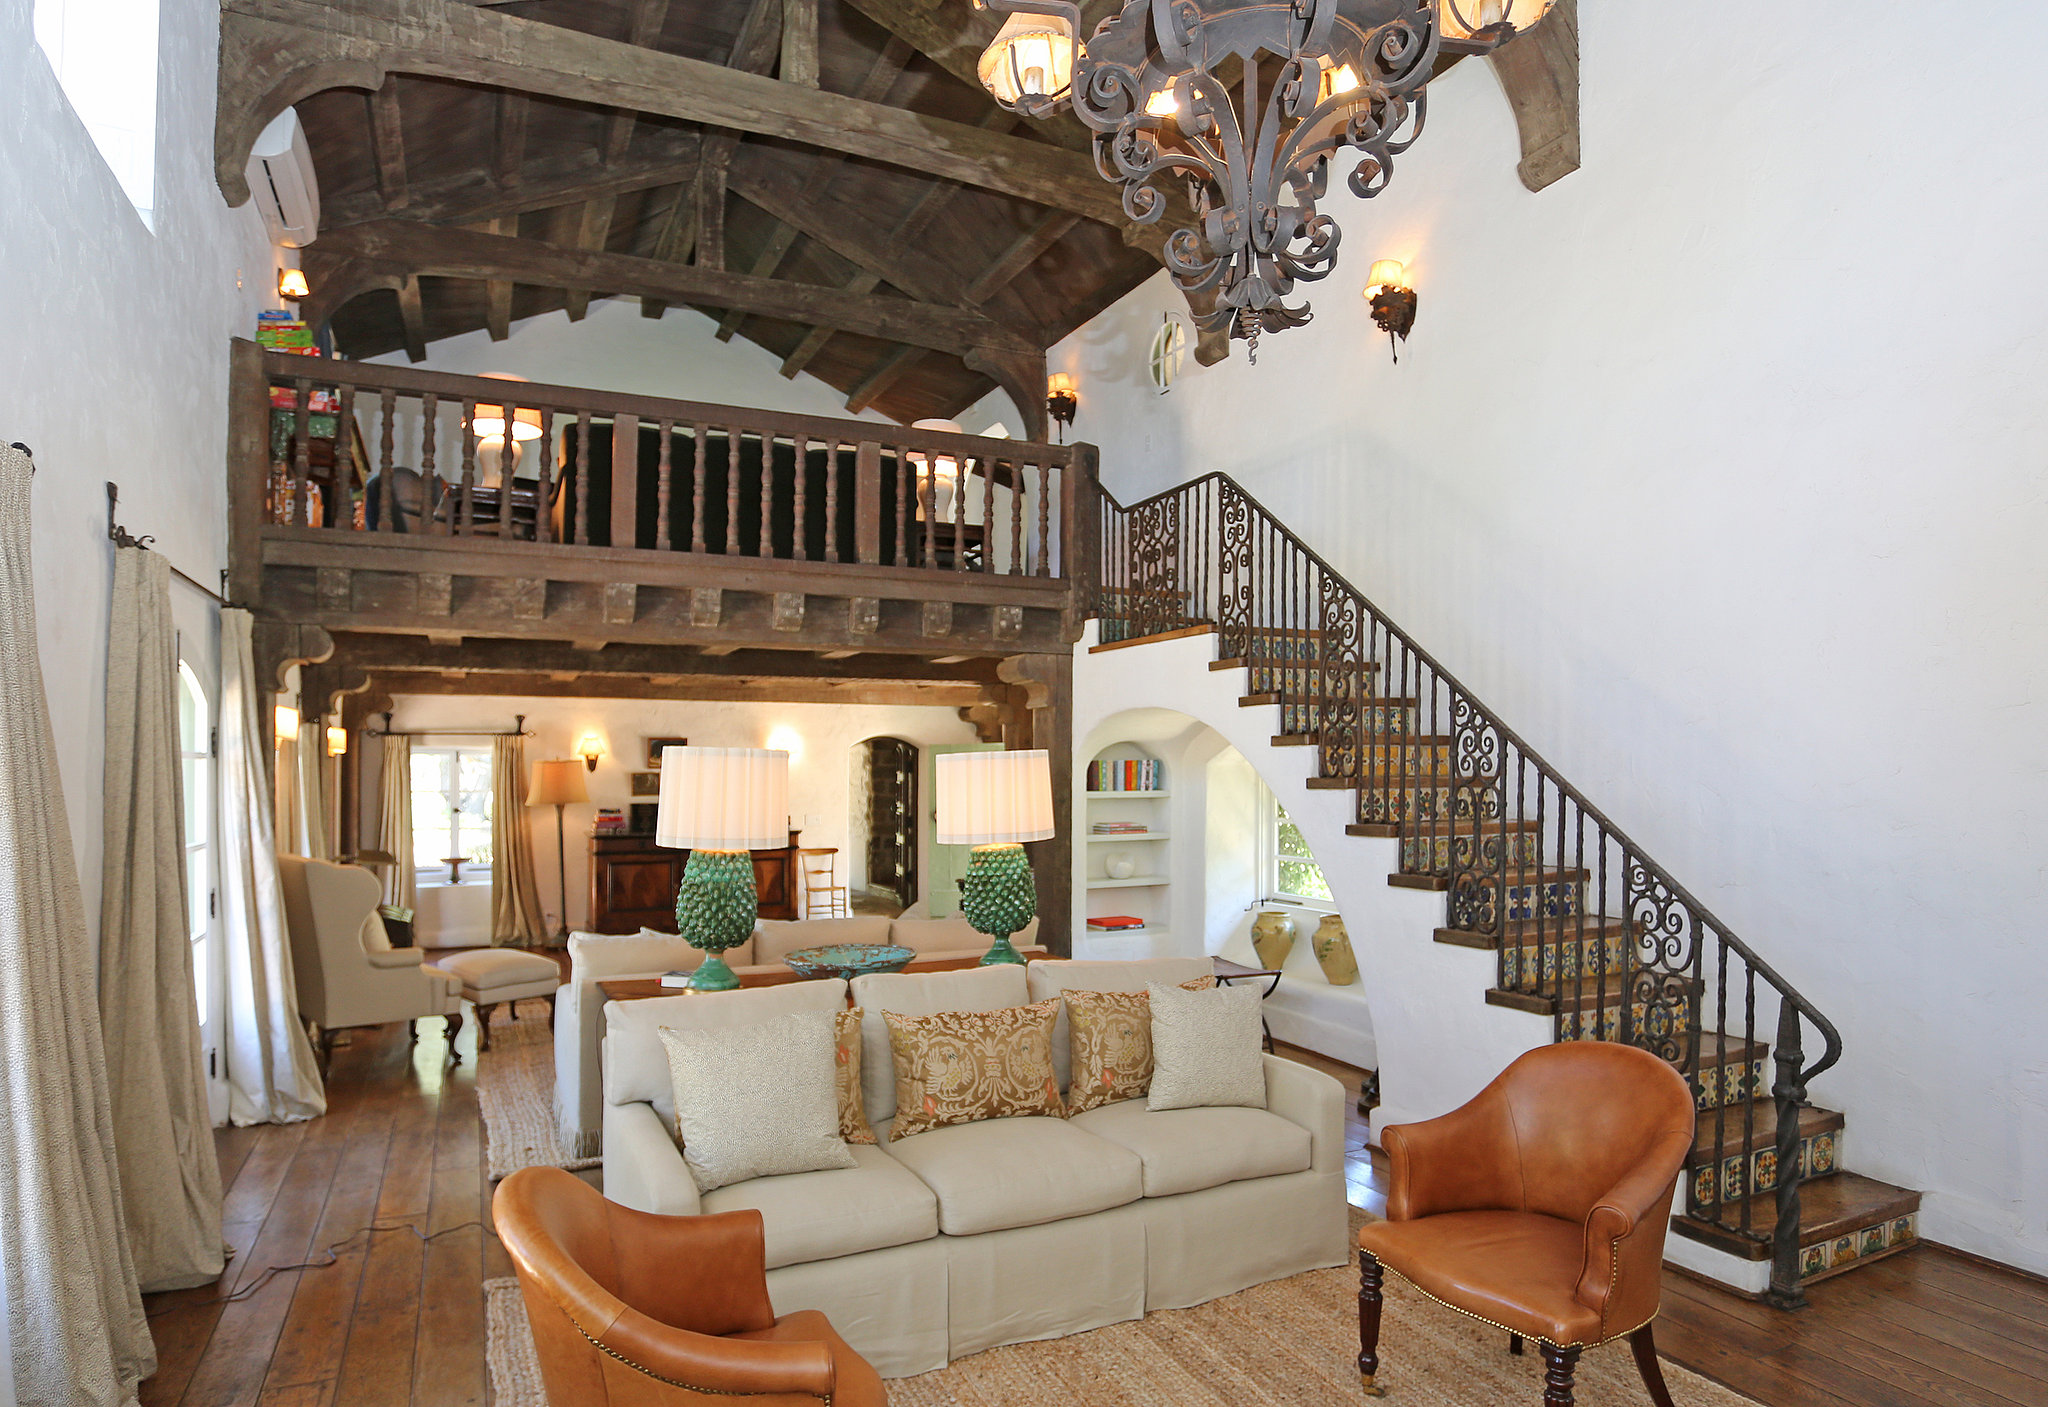 The living room highlights some of the many classic for The ranch house in ojai